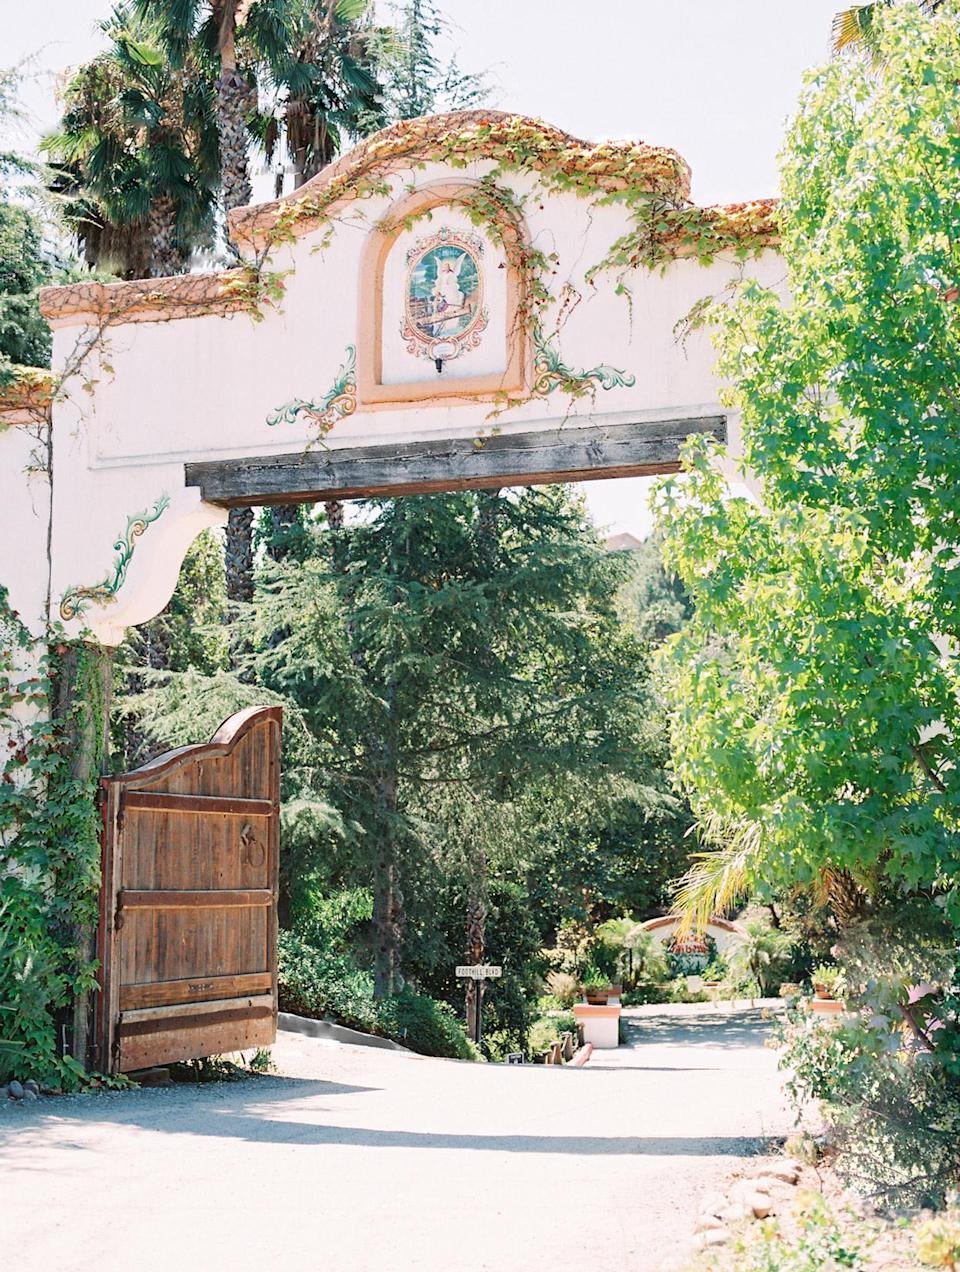 """<p>""""We fell in love with Rancho Las Lomas on a rainy Valentine's Day,"""" shares Ana. """"The Spanish private state has beautiful details, such as hand-printed title murals and 100-year-old Pasadena street lamps hidden in the Silverado hills."""" She and Charles loved the on-site nature, including the many oak and sycamore trees—plus the """"casitas,"""" which allowed family to stay on-site.</p>"""